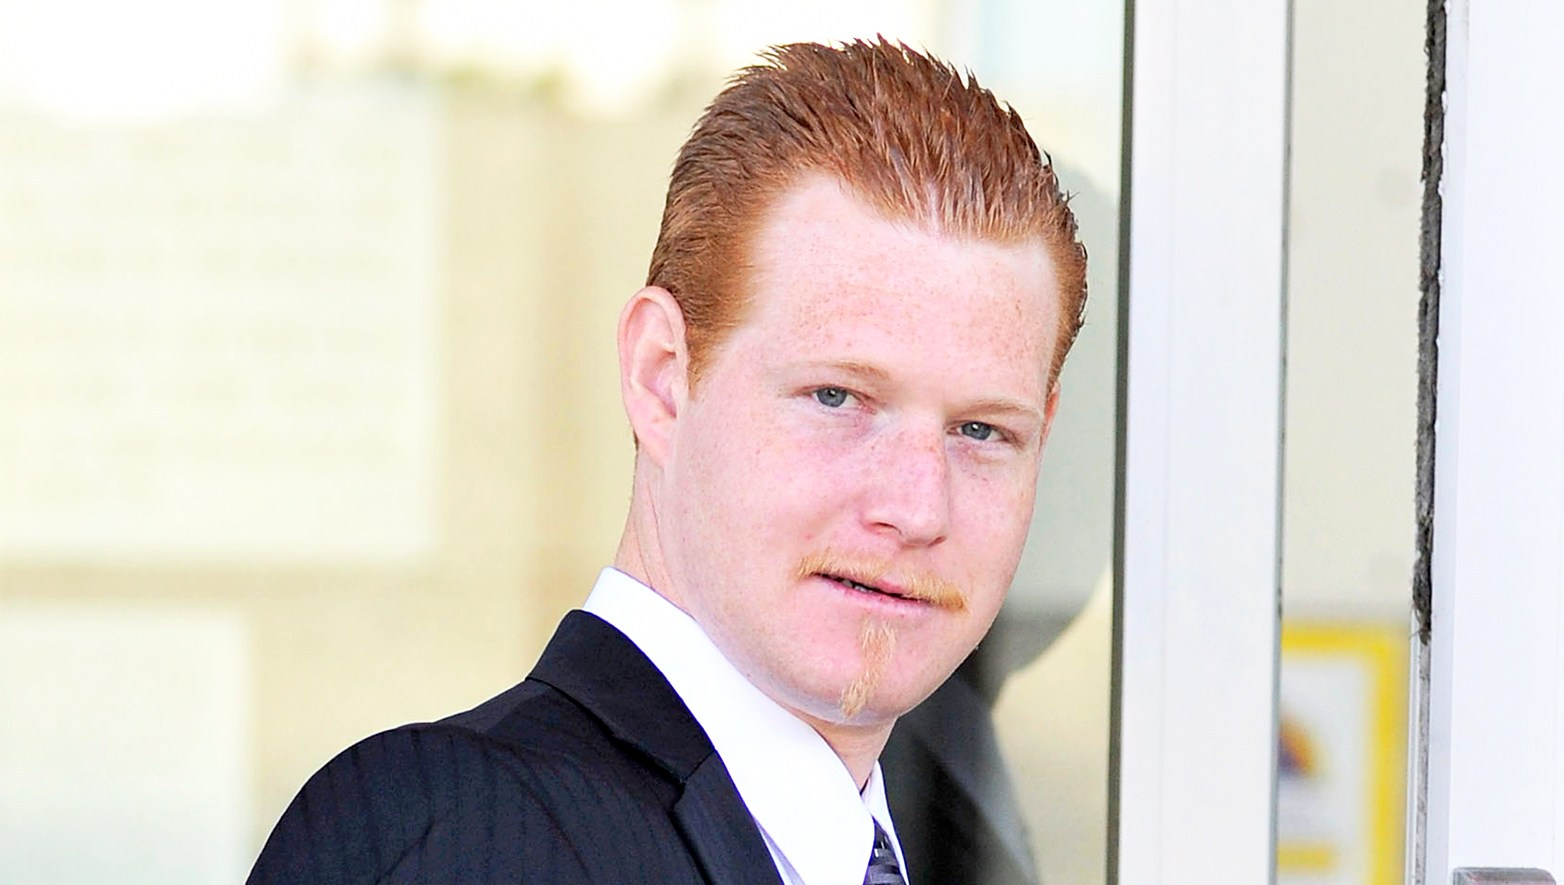 Redmond O'Neal arrives at LAX Courthouse on October 9, 2012 in Los Angeles, California.